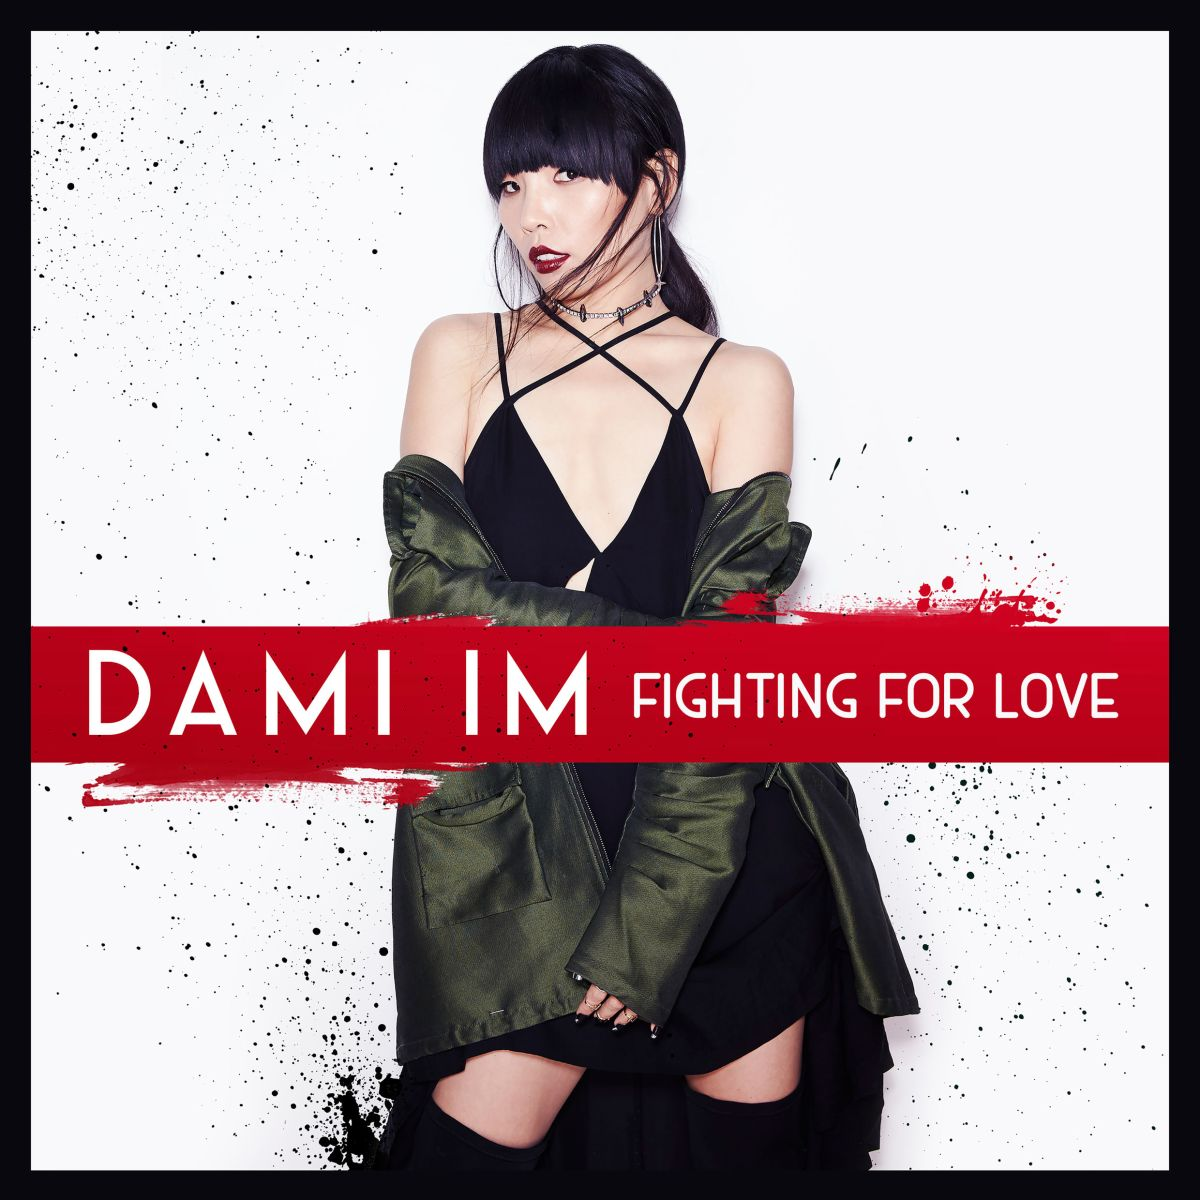 dami-im-fighting-for-love